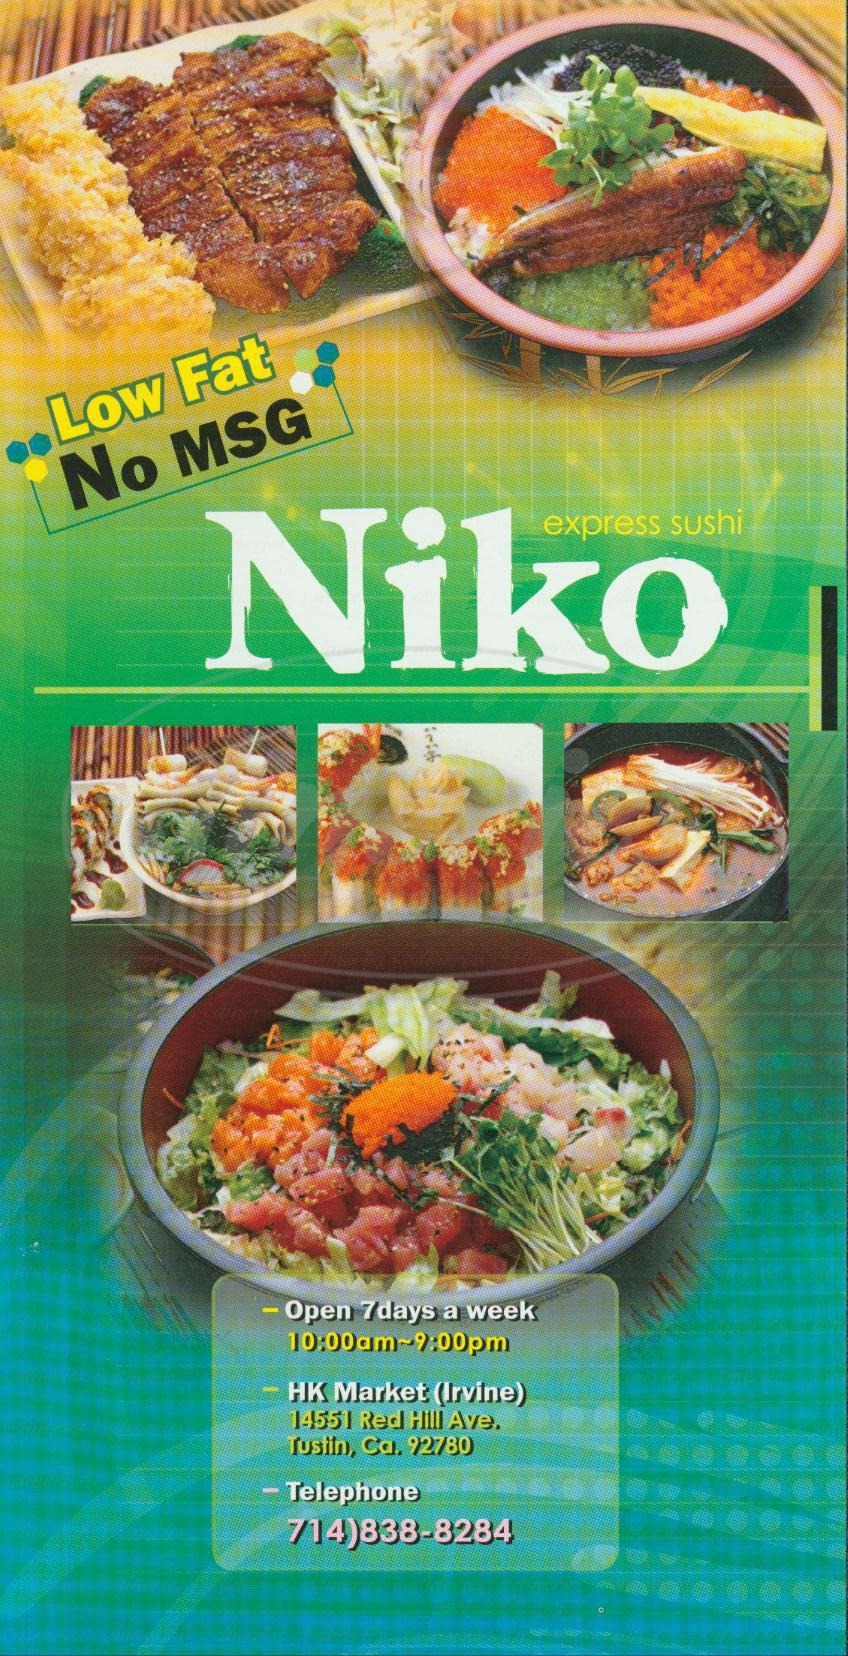 menu for Niko Express Sushi